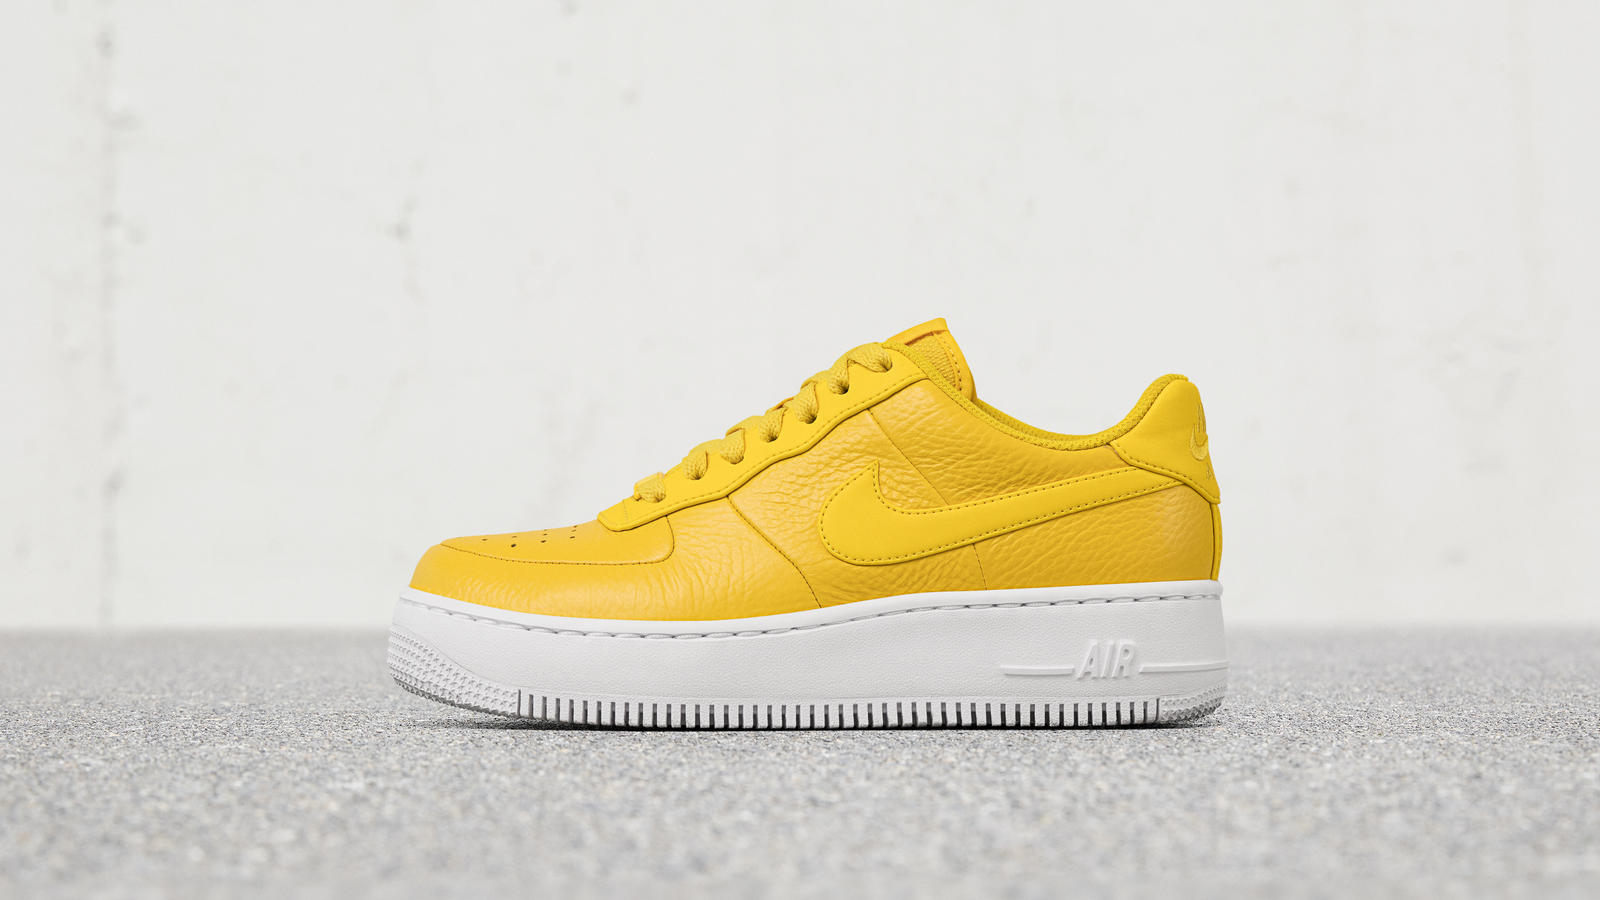 Bread_and_Butter_AF1_1_hd_1600.jpg